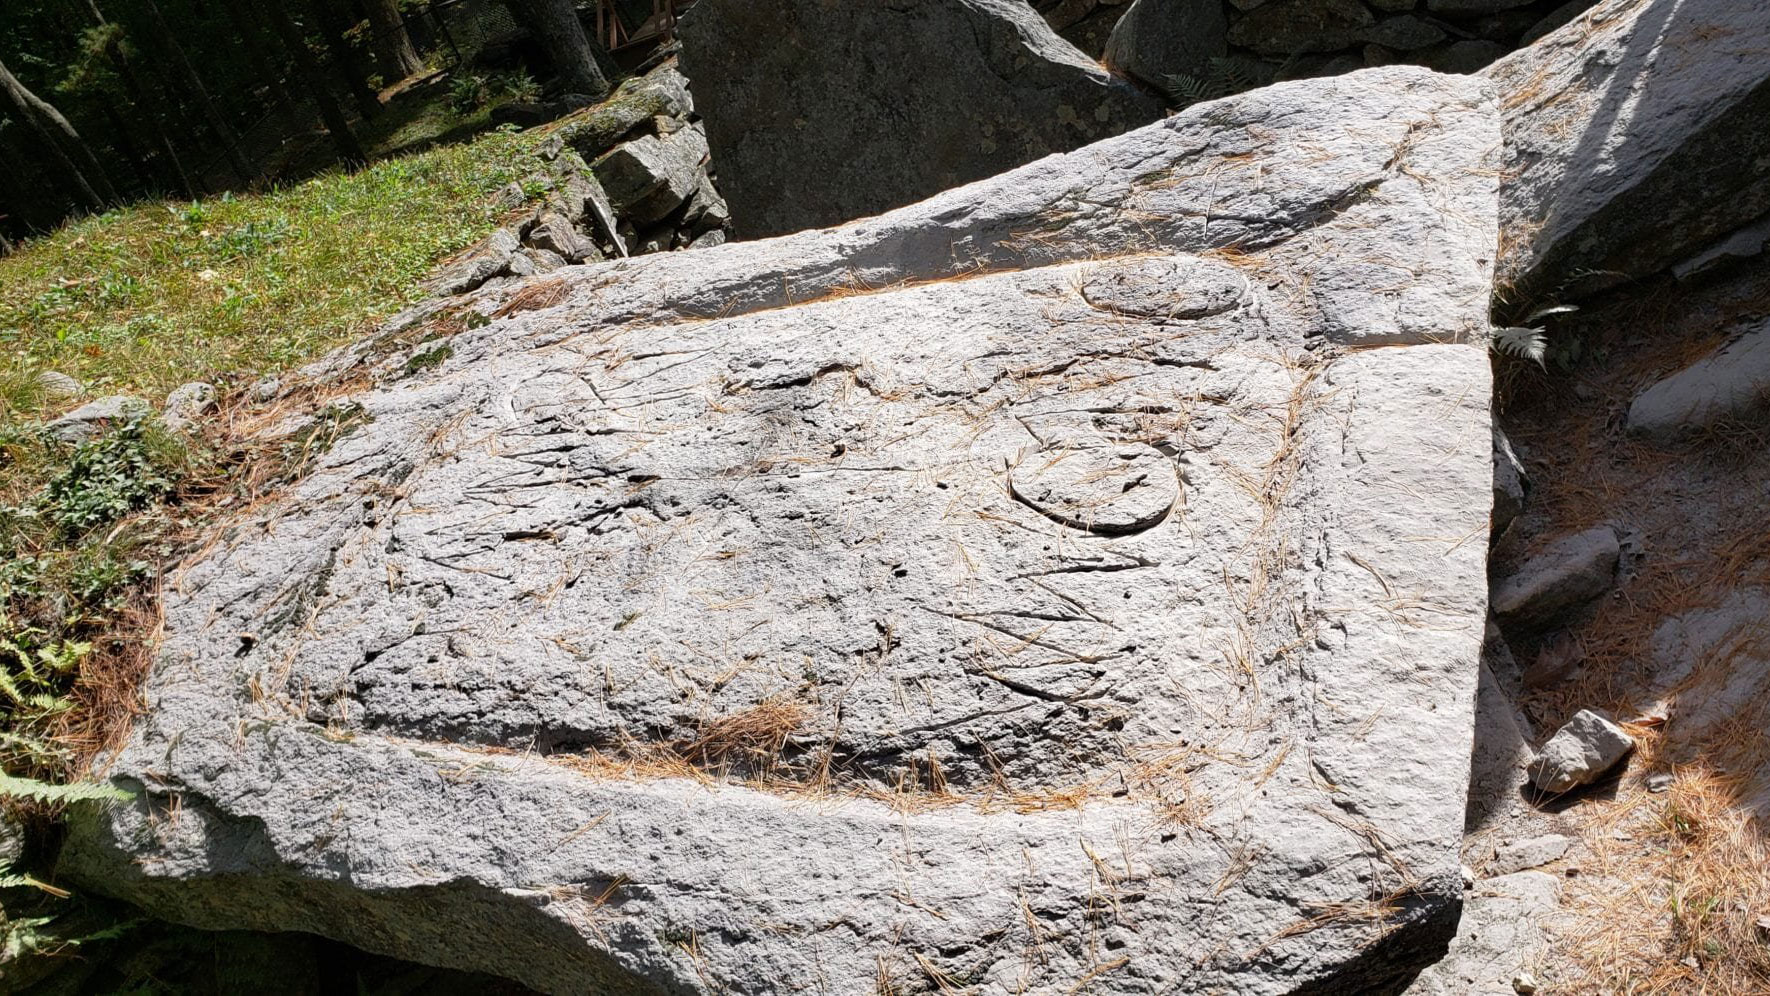 Man arrested after allegedly defacing 'America's Stonehenge' with suspected QAnon-related graffiti